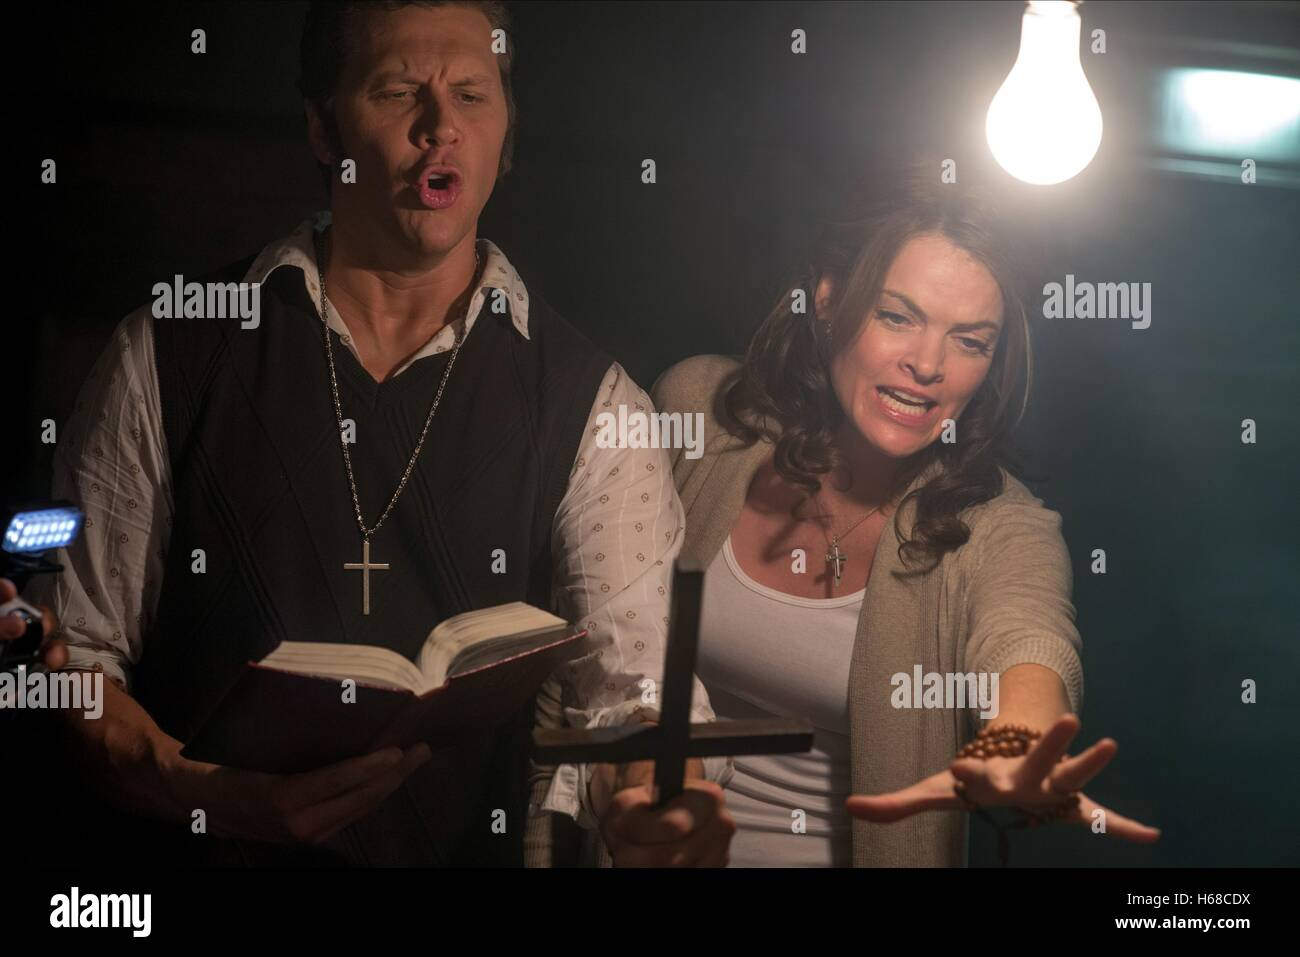 HAYES MACARTHUR & MISSI PYLE A HAUNTED HOUSE 2 (2014 Stock